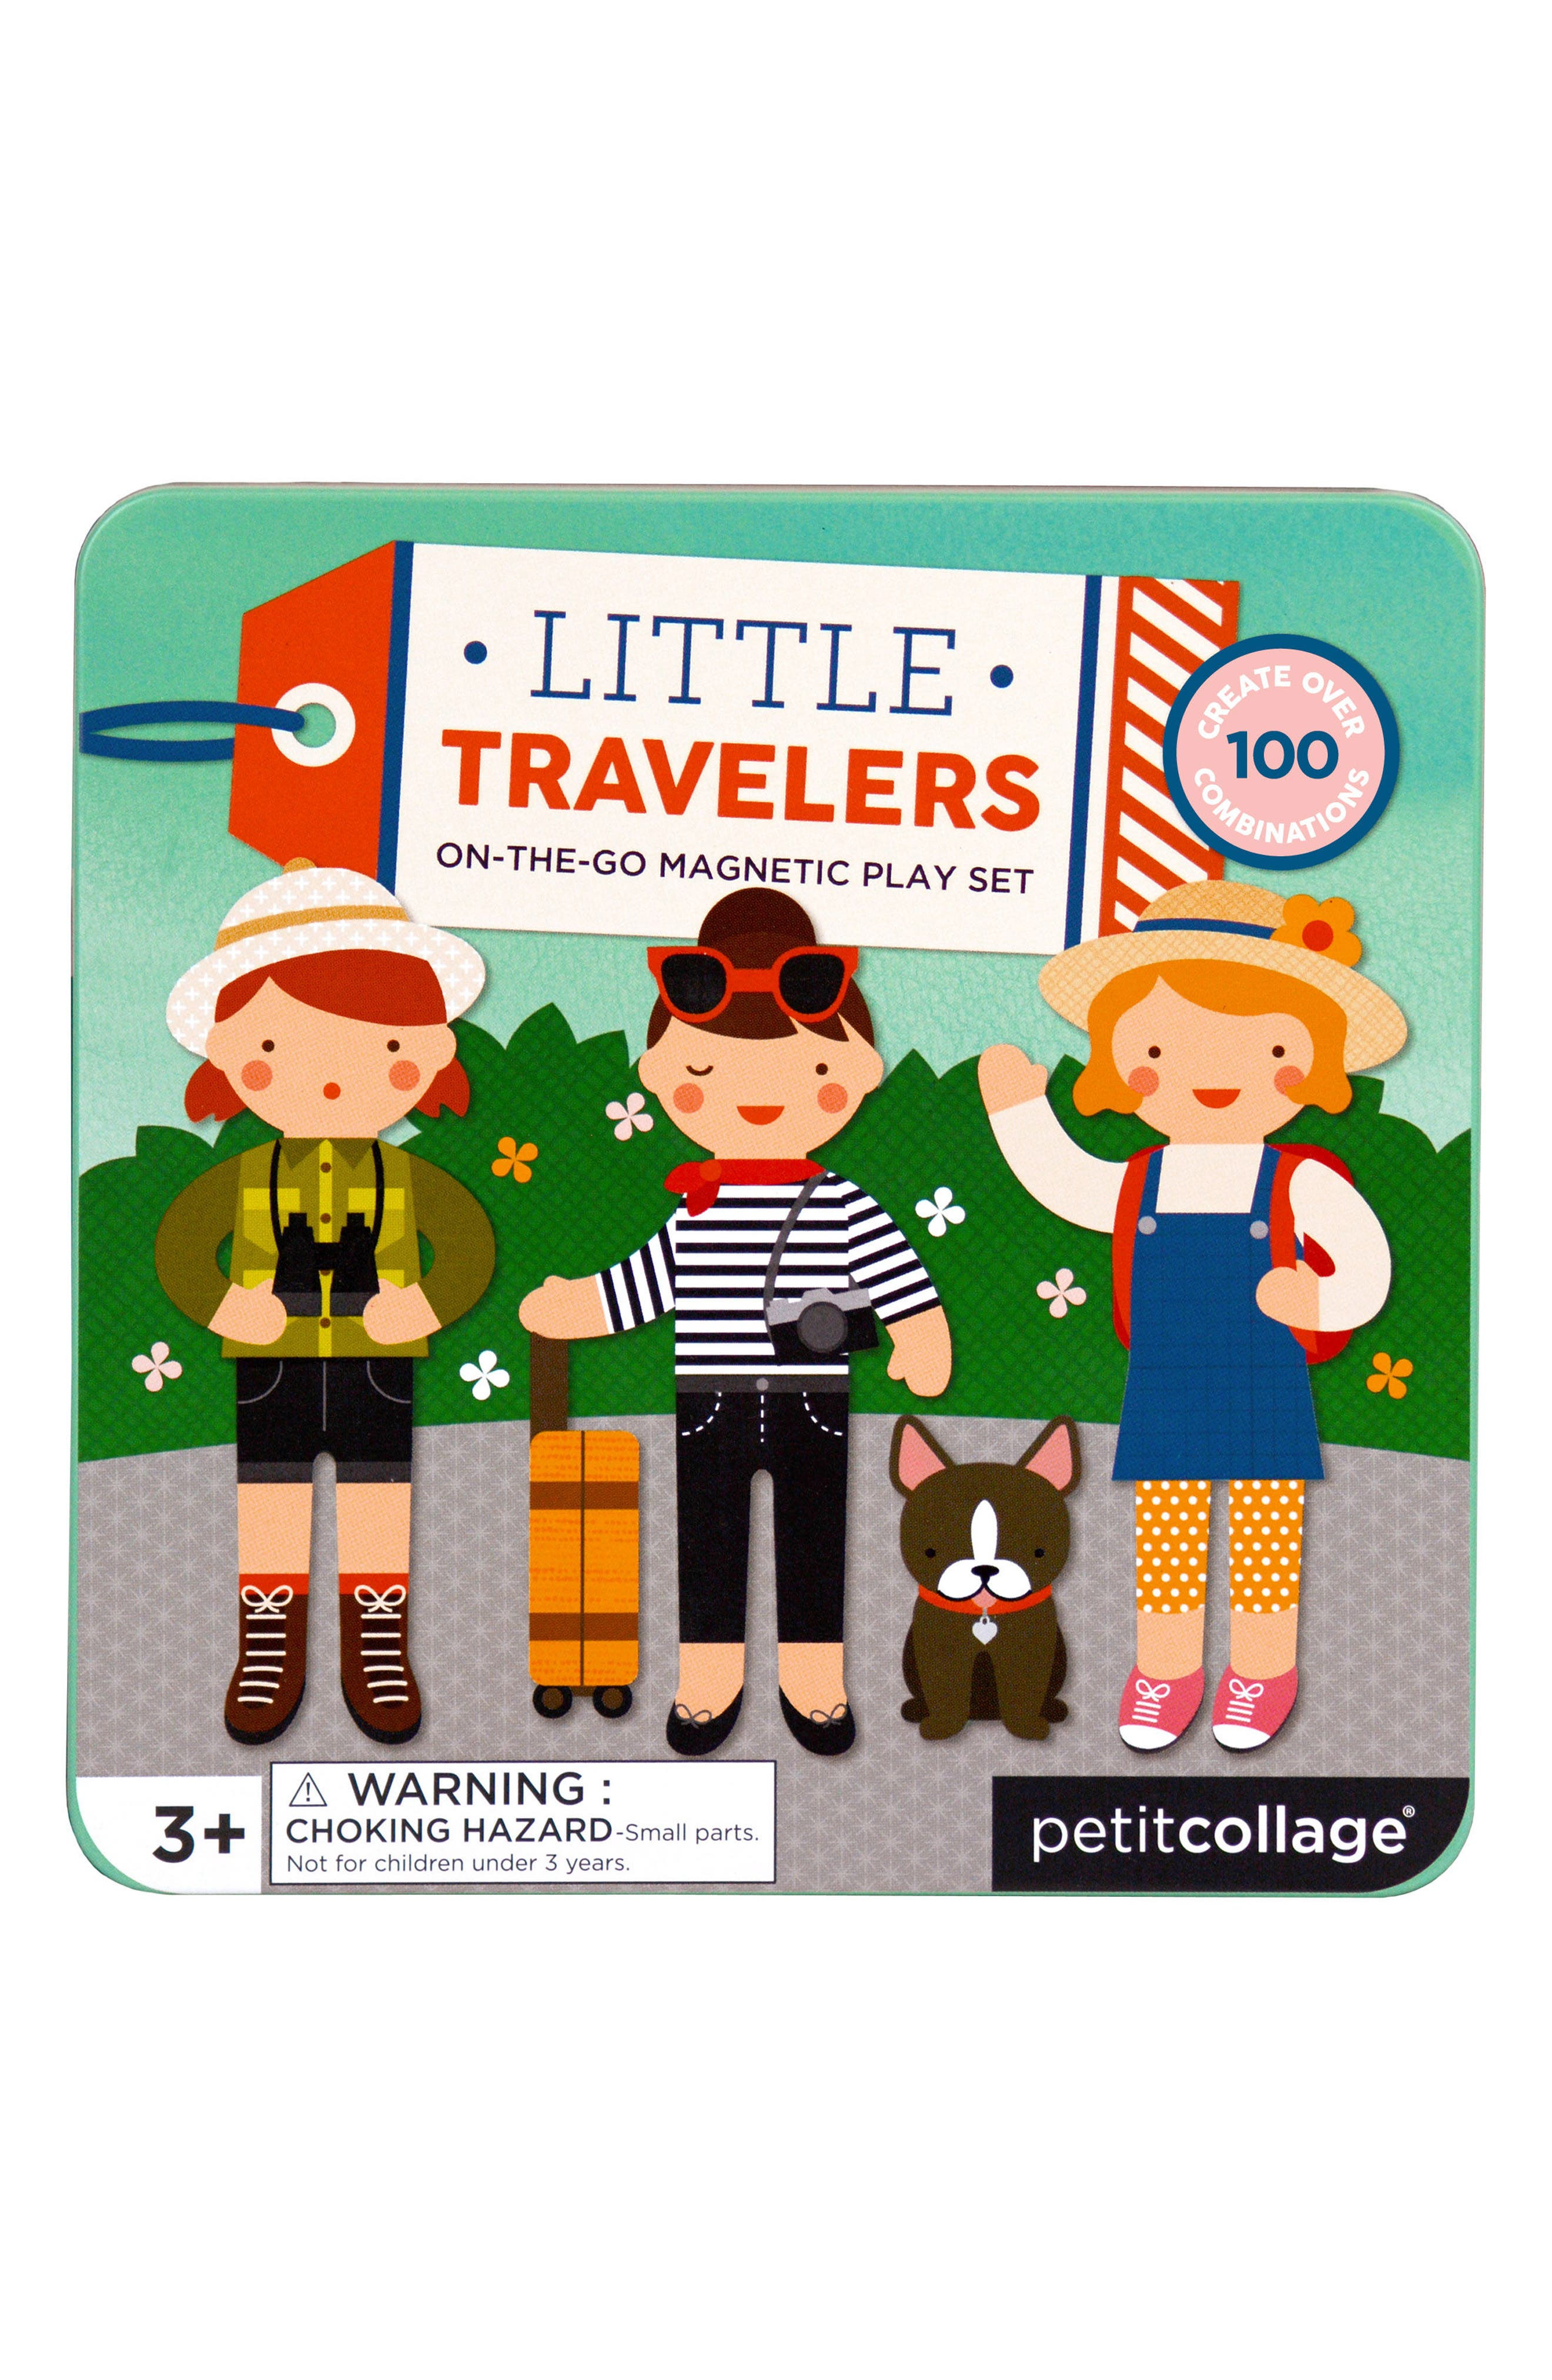 Little Travelers On-the-Go Magnetic Play Set,                             Main thumbnail 1, color,                             Green